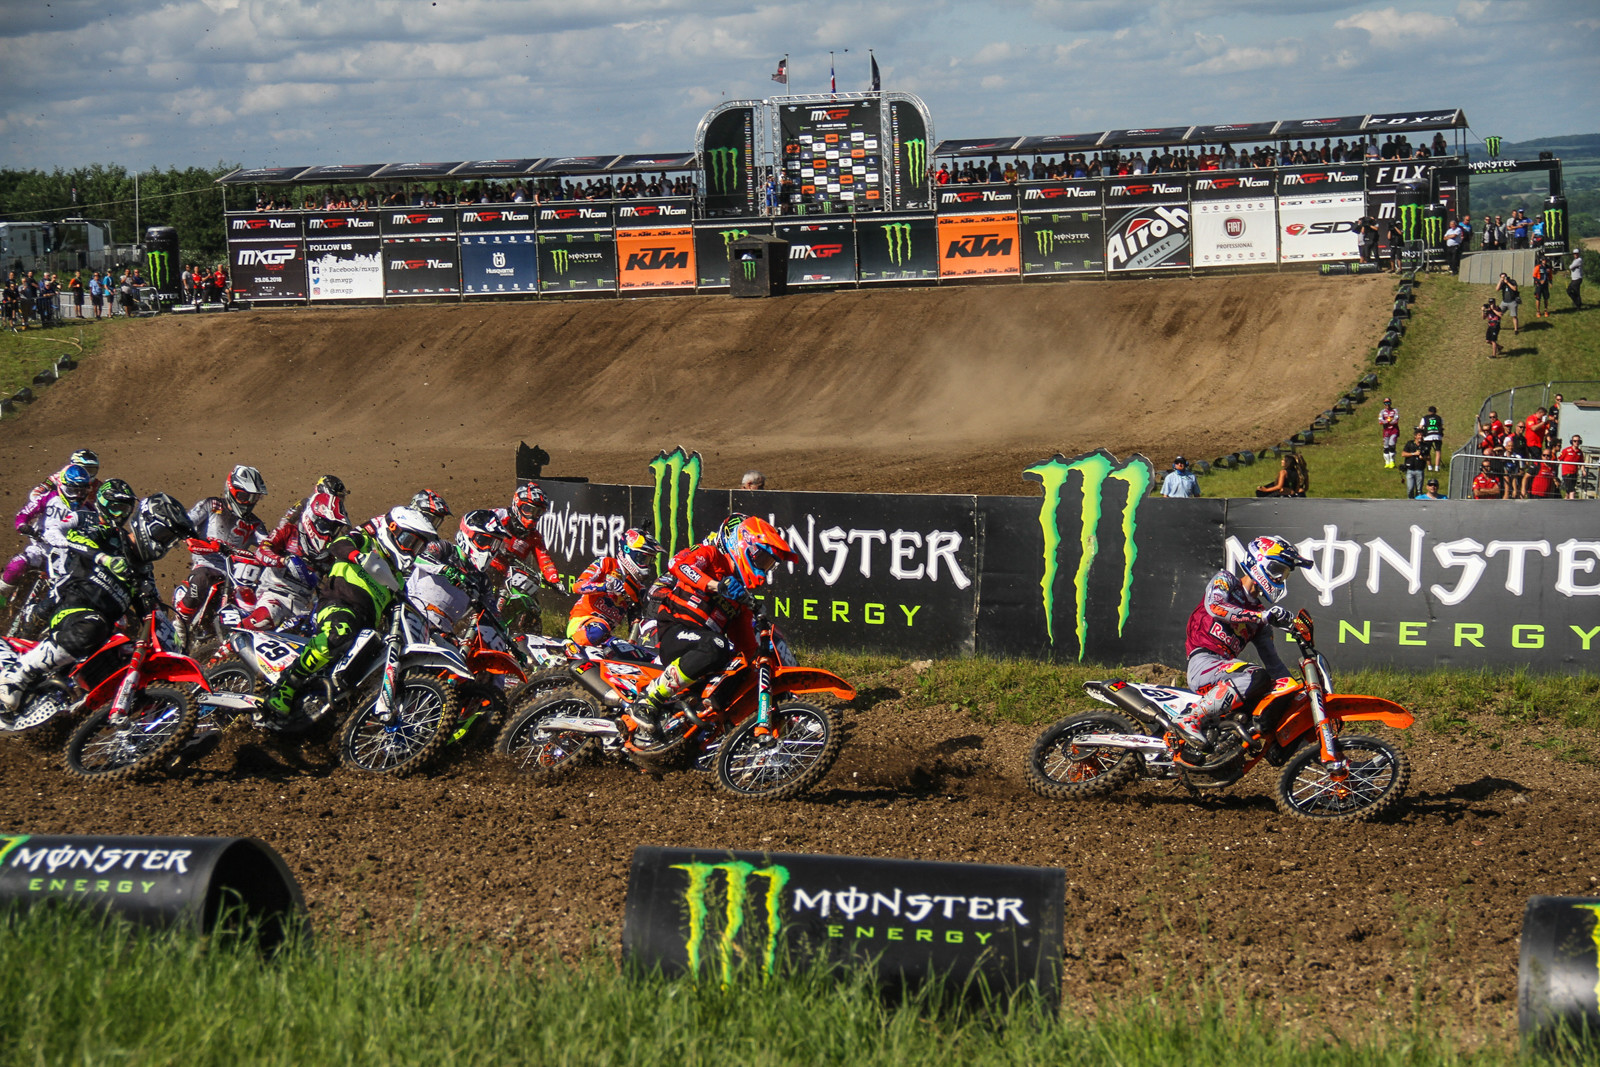 Flipping a coin for tails offers less of a chance of being right than saying Jorge Prado will get the holeshot.